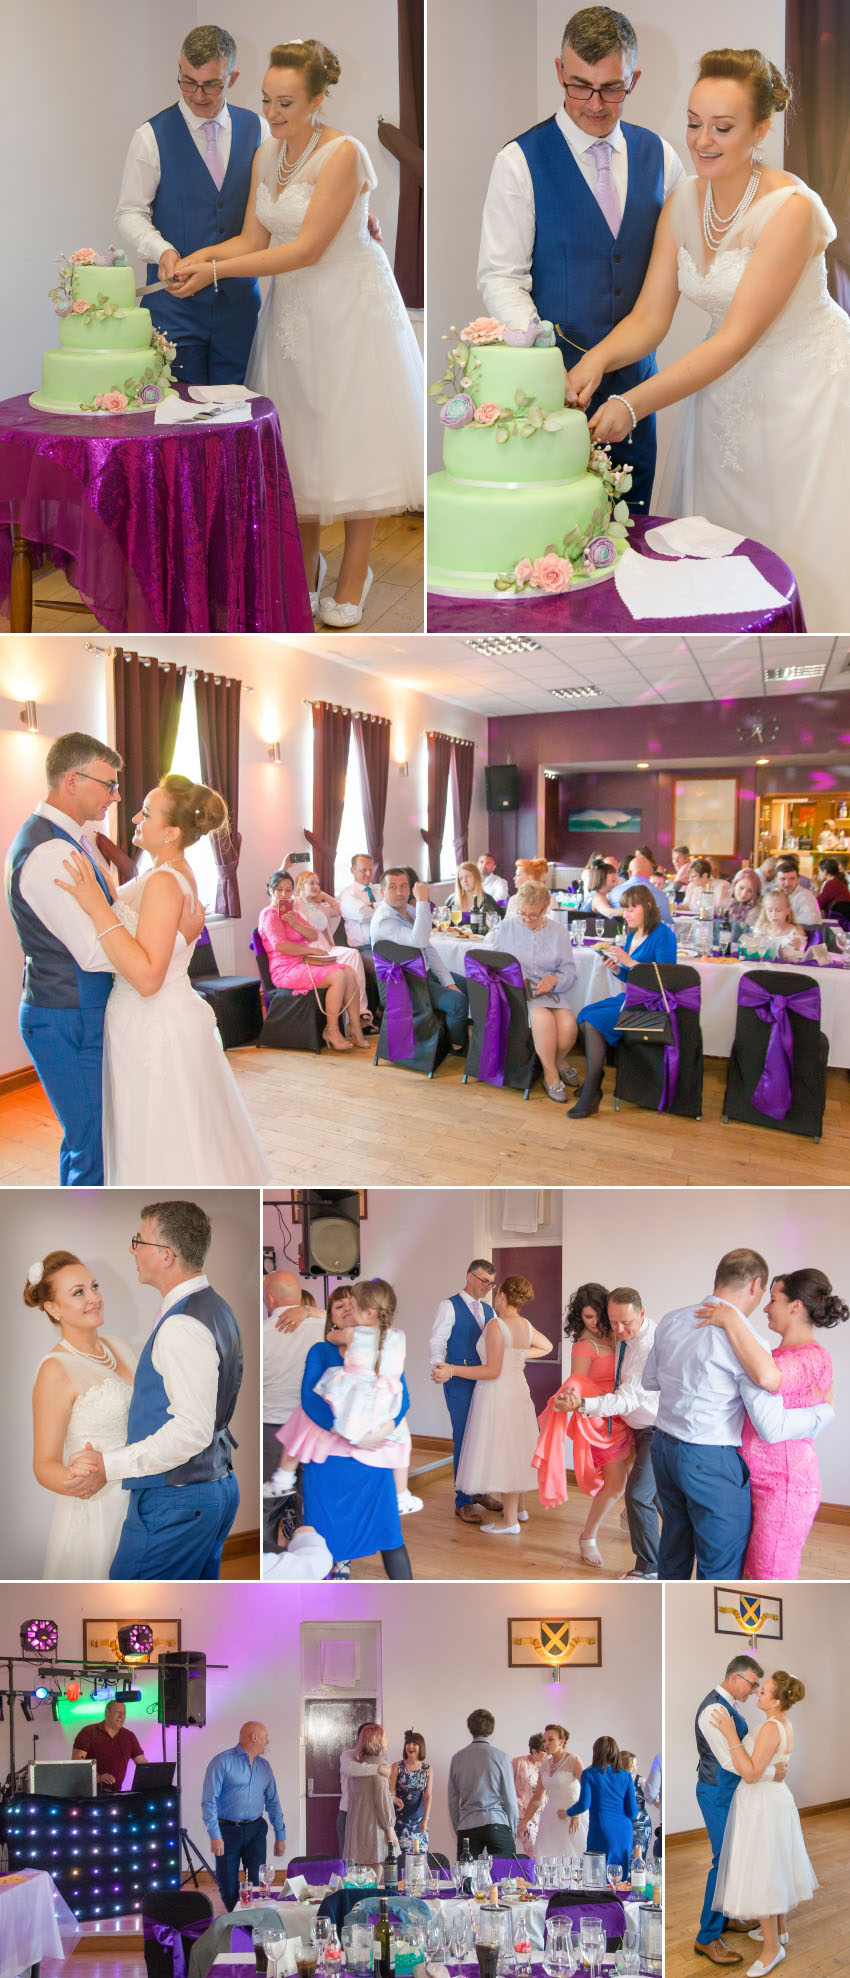 Photography of a wedding at St Albans Register Office 14